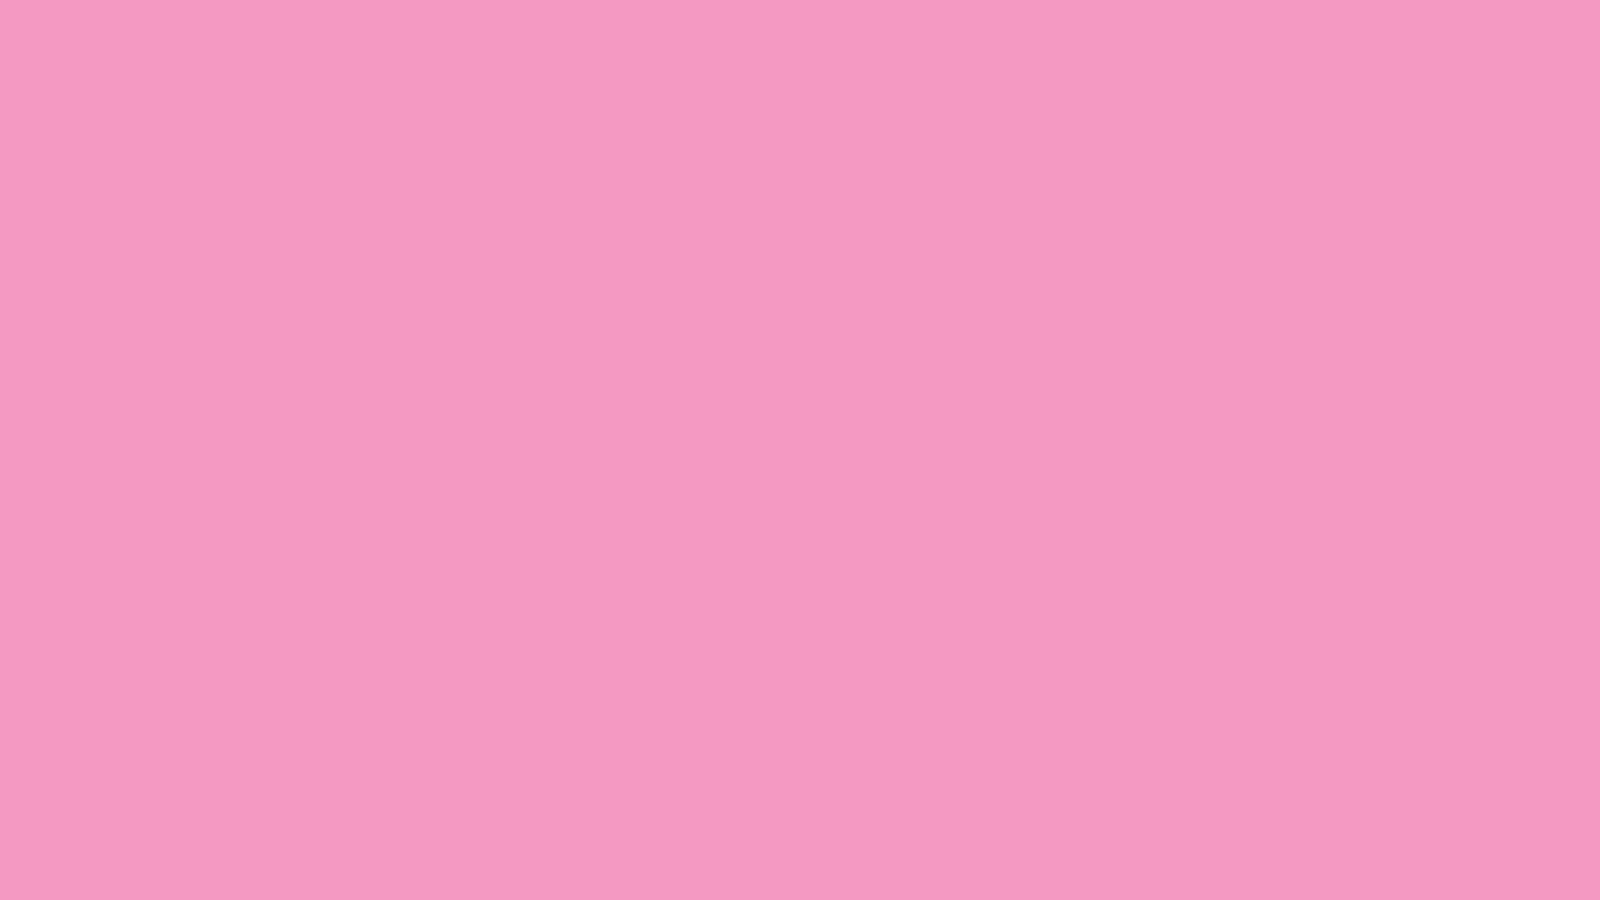 1600x900 Pastel Magenta Solid Color Background